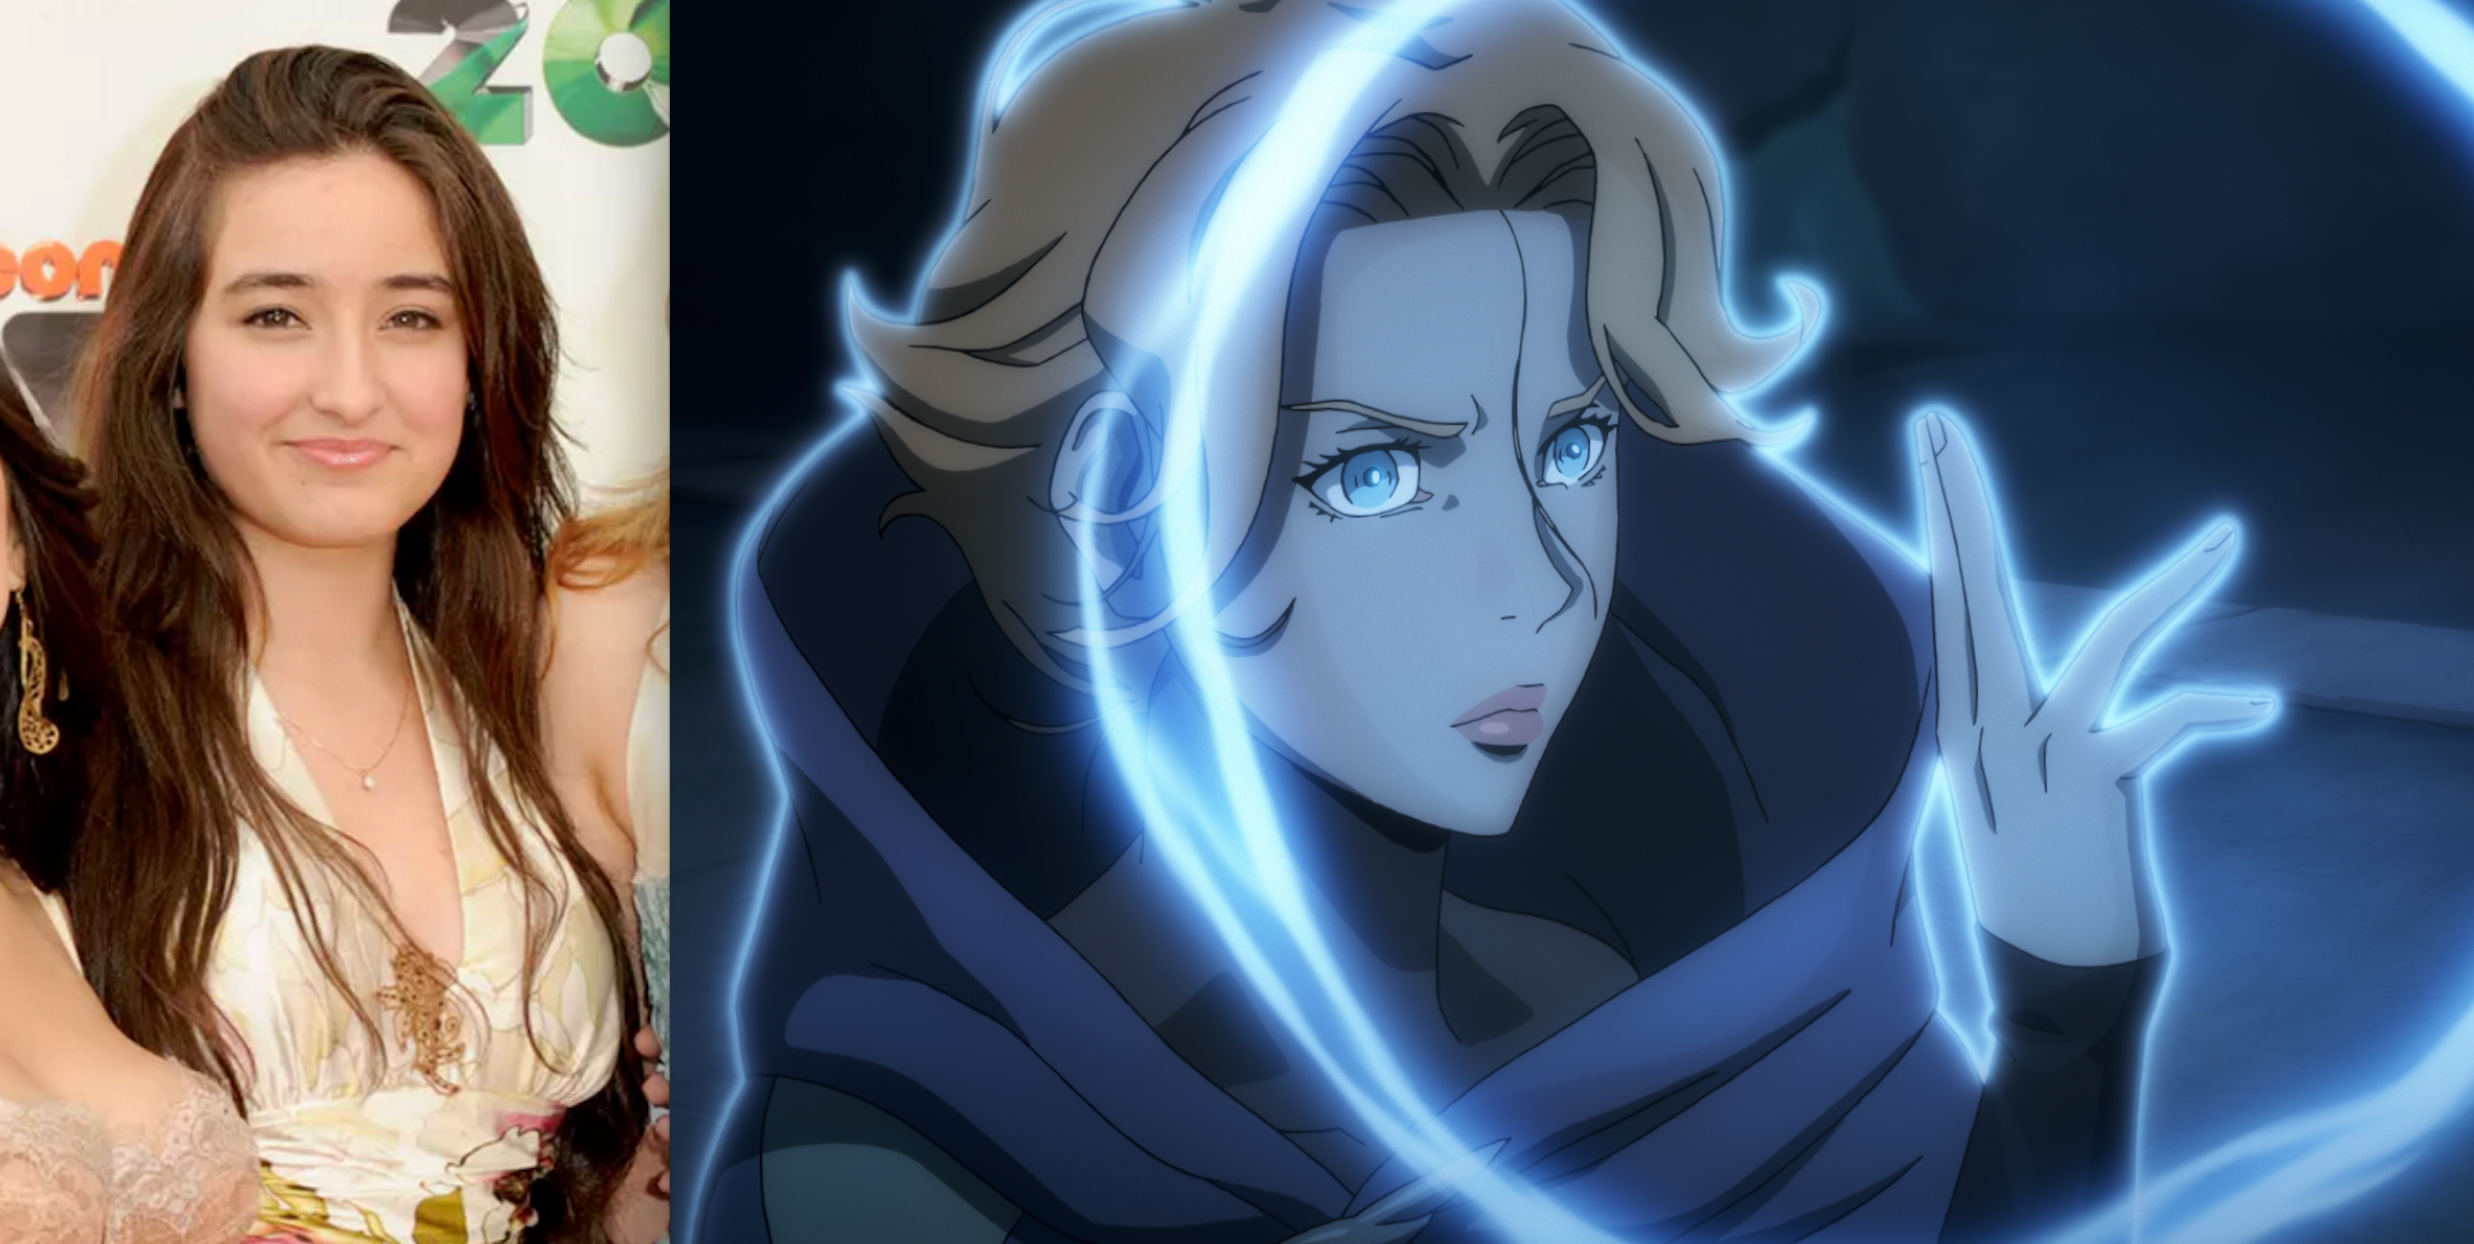 Here's Who'll Be Appearing in Netflix's New Castlevania Series